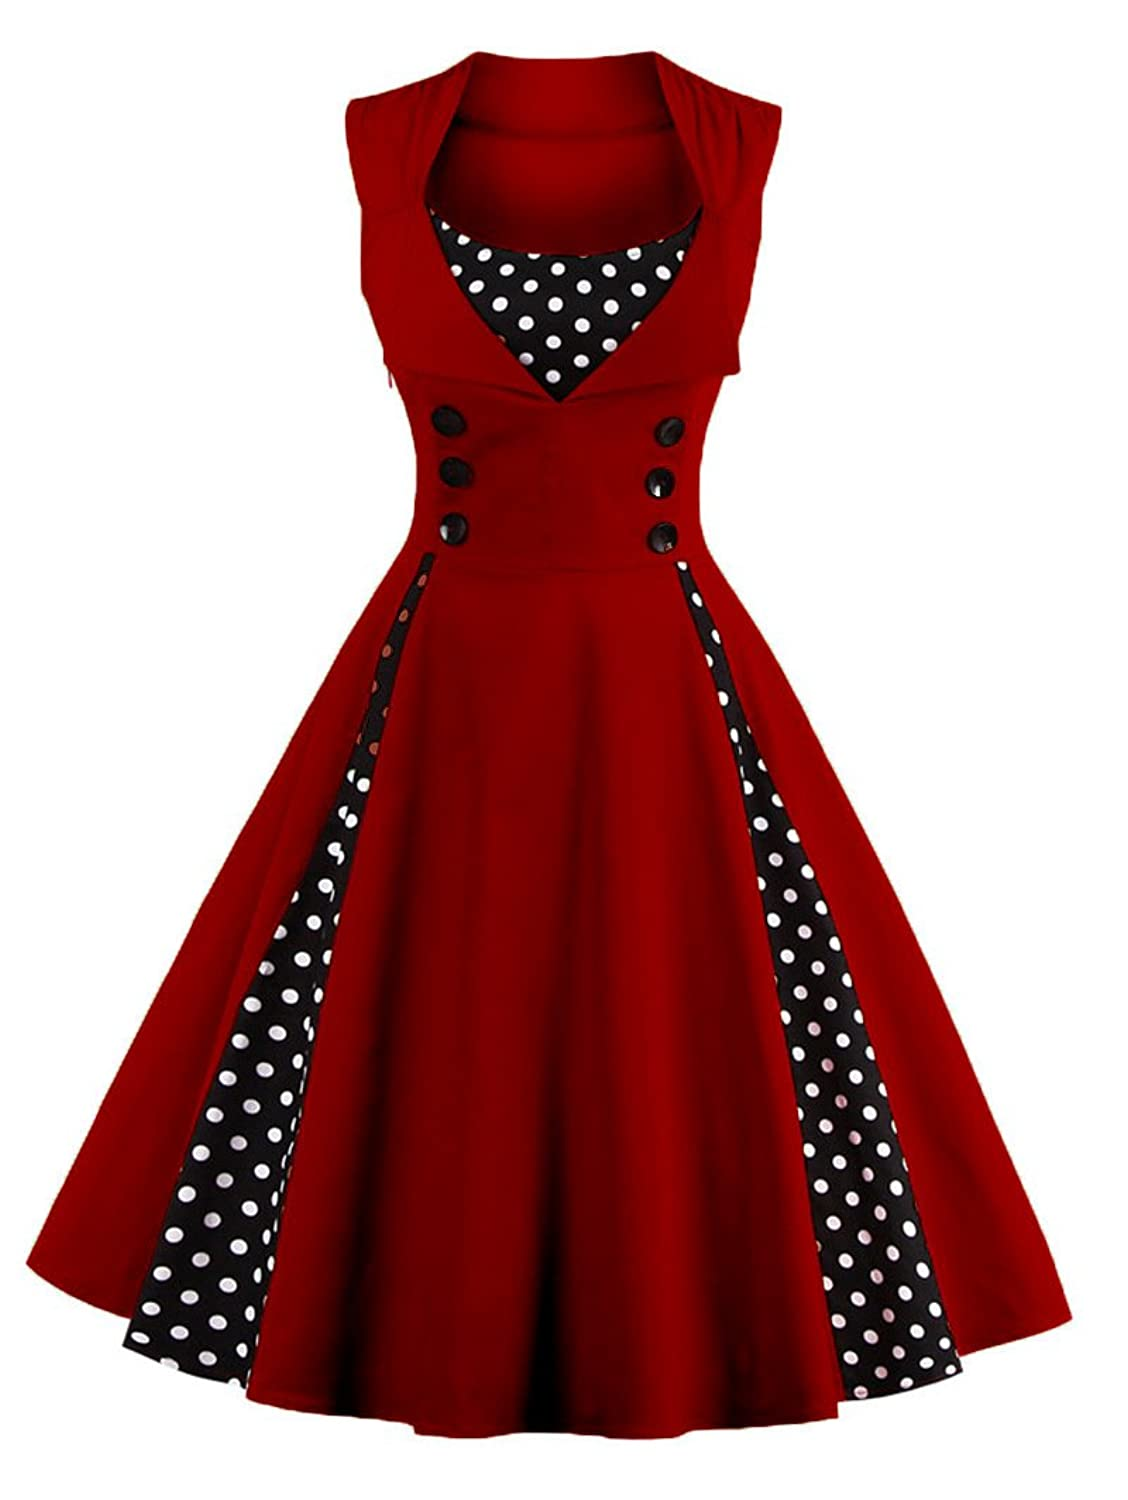 Vintage Christmas Gift Ideas for Women LUNAJANY Womens Rockabilly Vintage Polka Dot Pin up Swing Cocktail Party Dress $24.59 AT vintagedancer.com